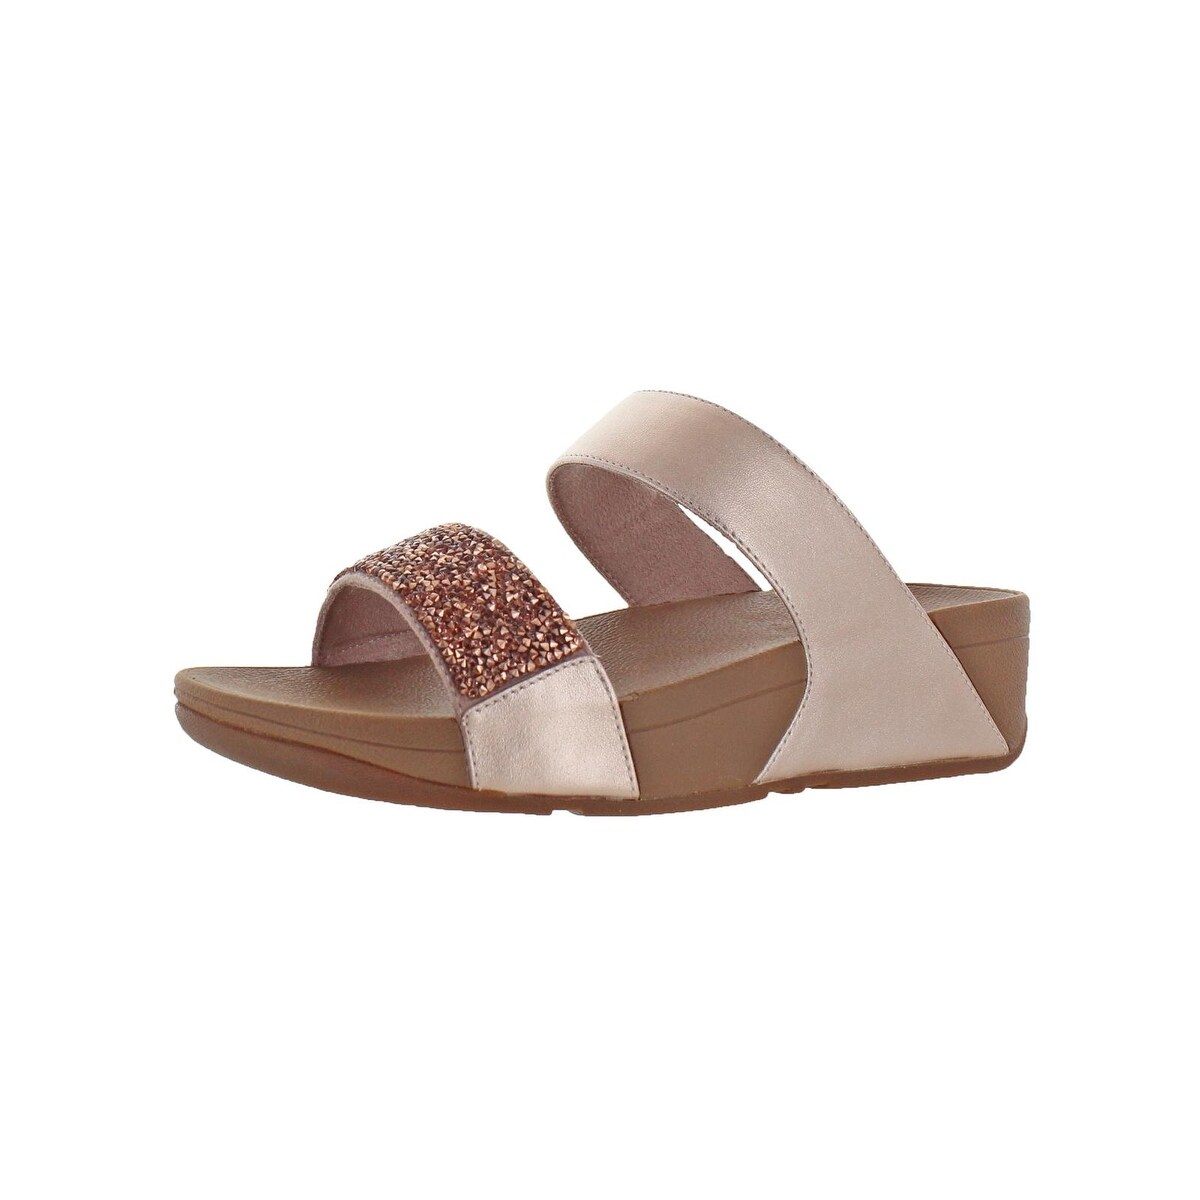 e5047a4d1e8 Buy FitFlop Women s Sandals Online at Overstock